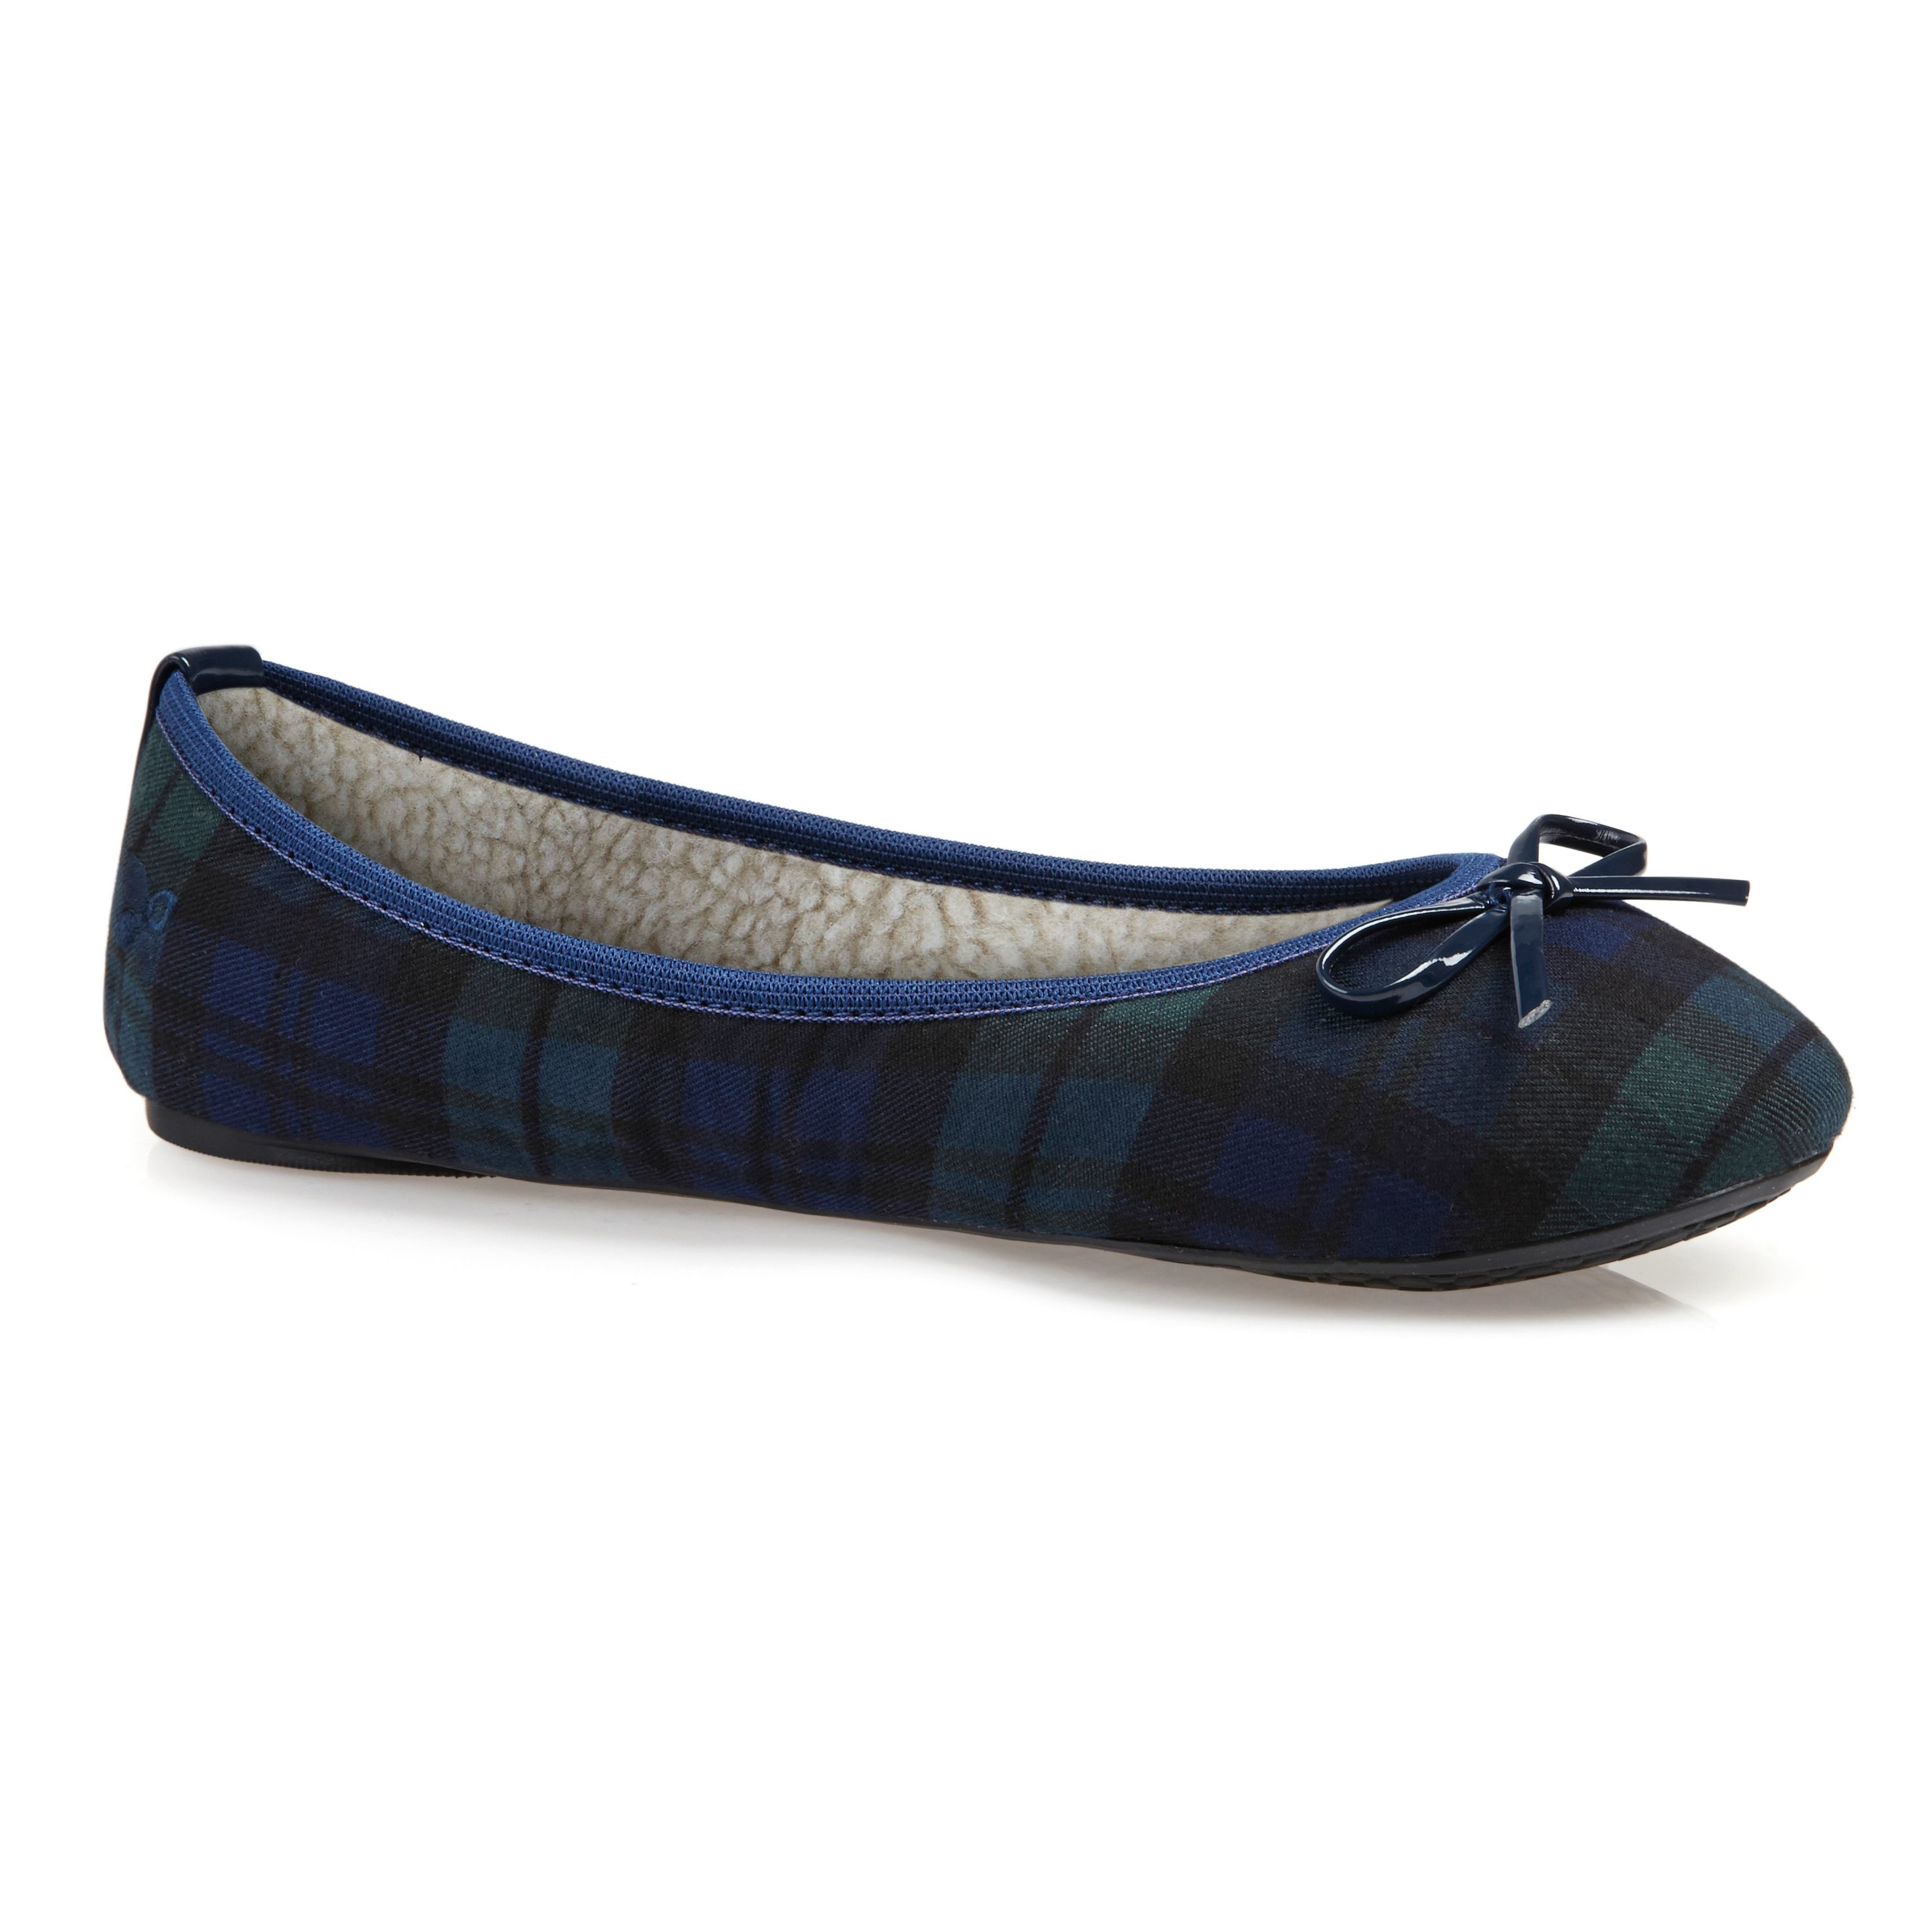 butterfly twists ballerina shoe in blue navy lyst. Black Bedroom Furniture Sets. Home Design Ideas